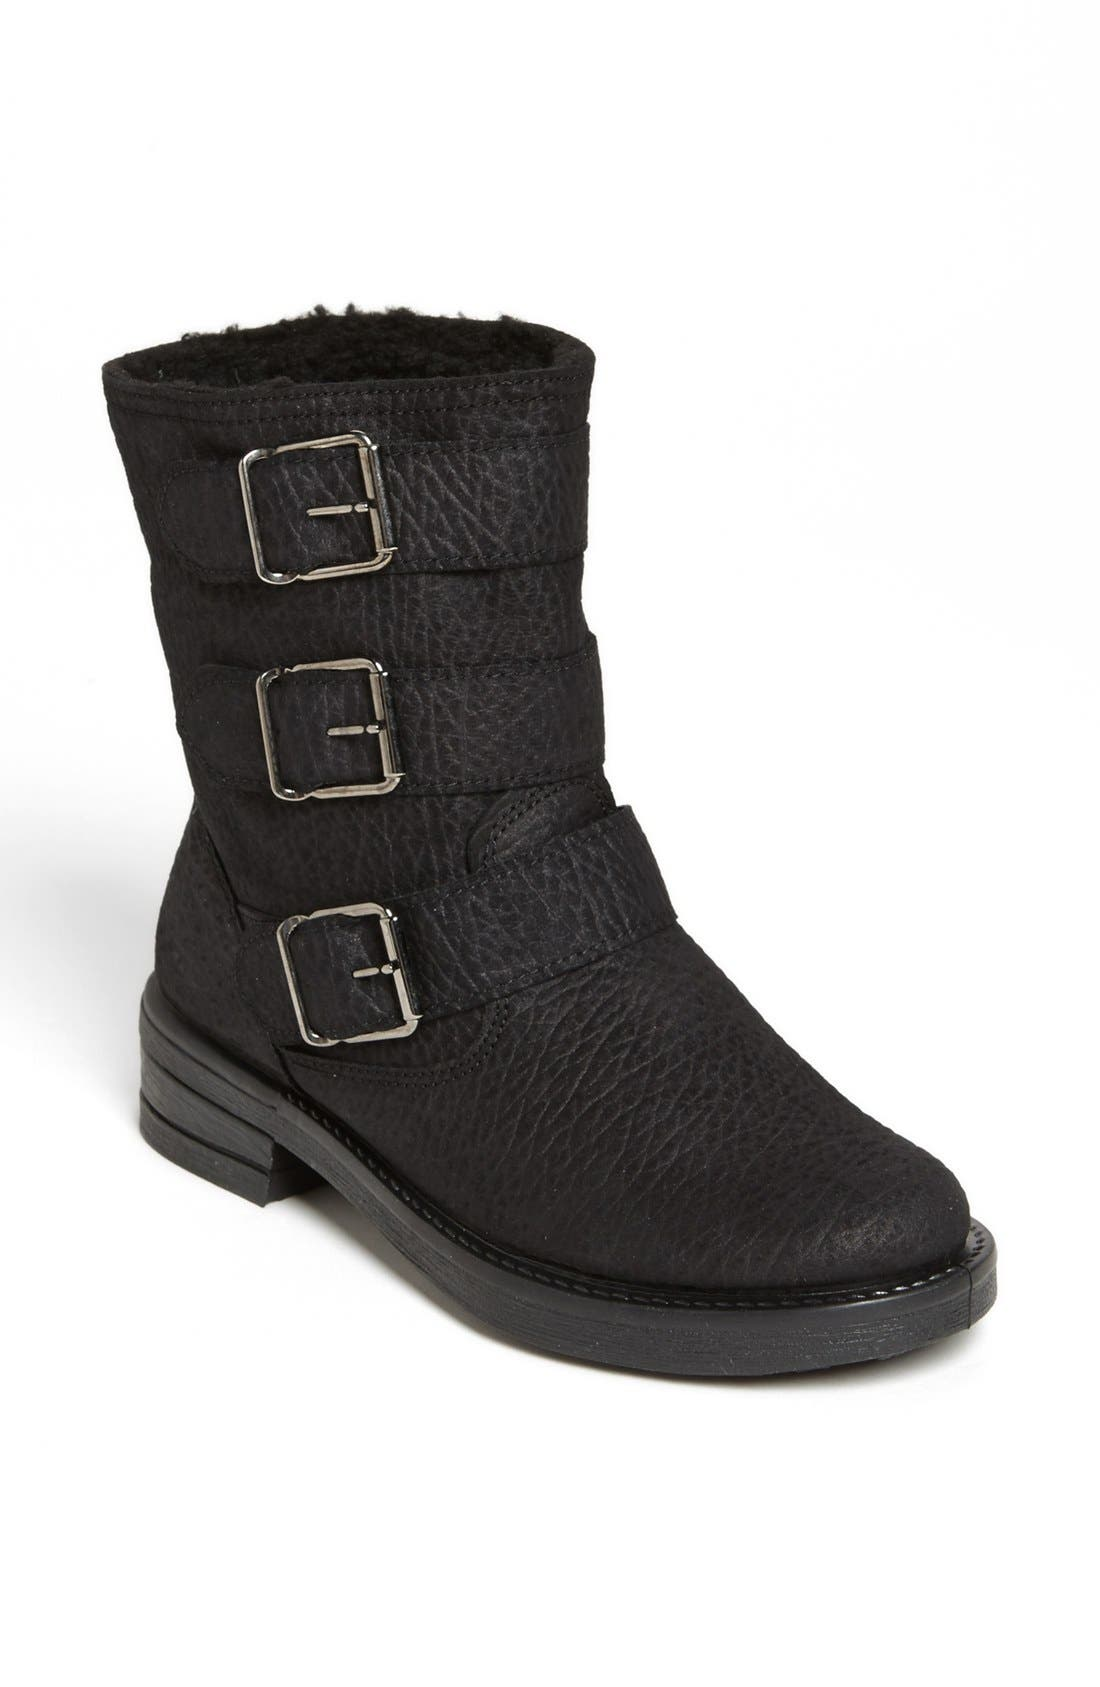 Alternate Image 1 Selected - Topshop 'Marquis' Boot